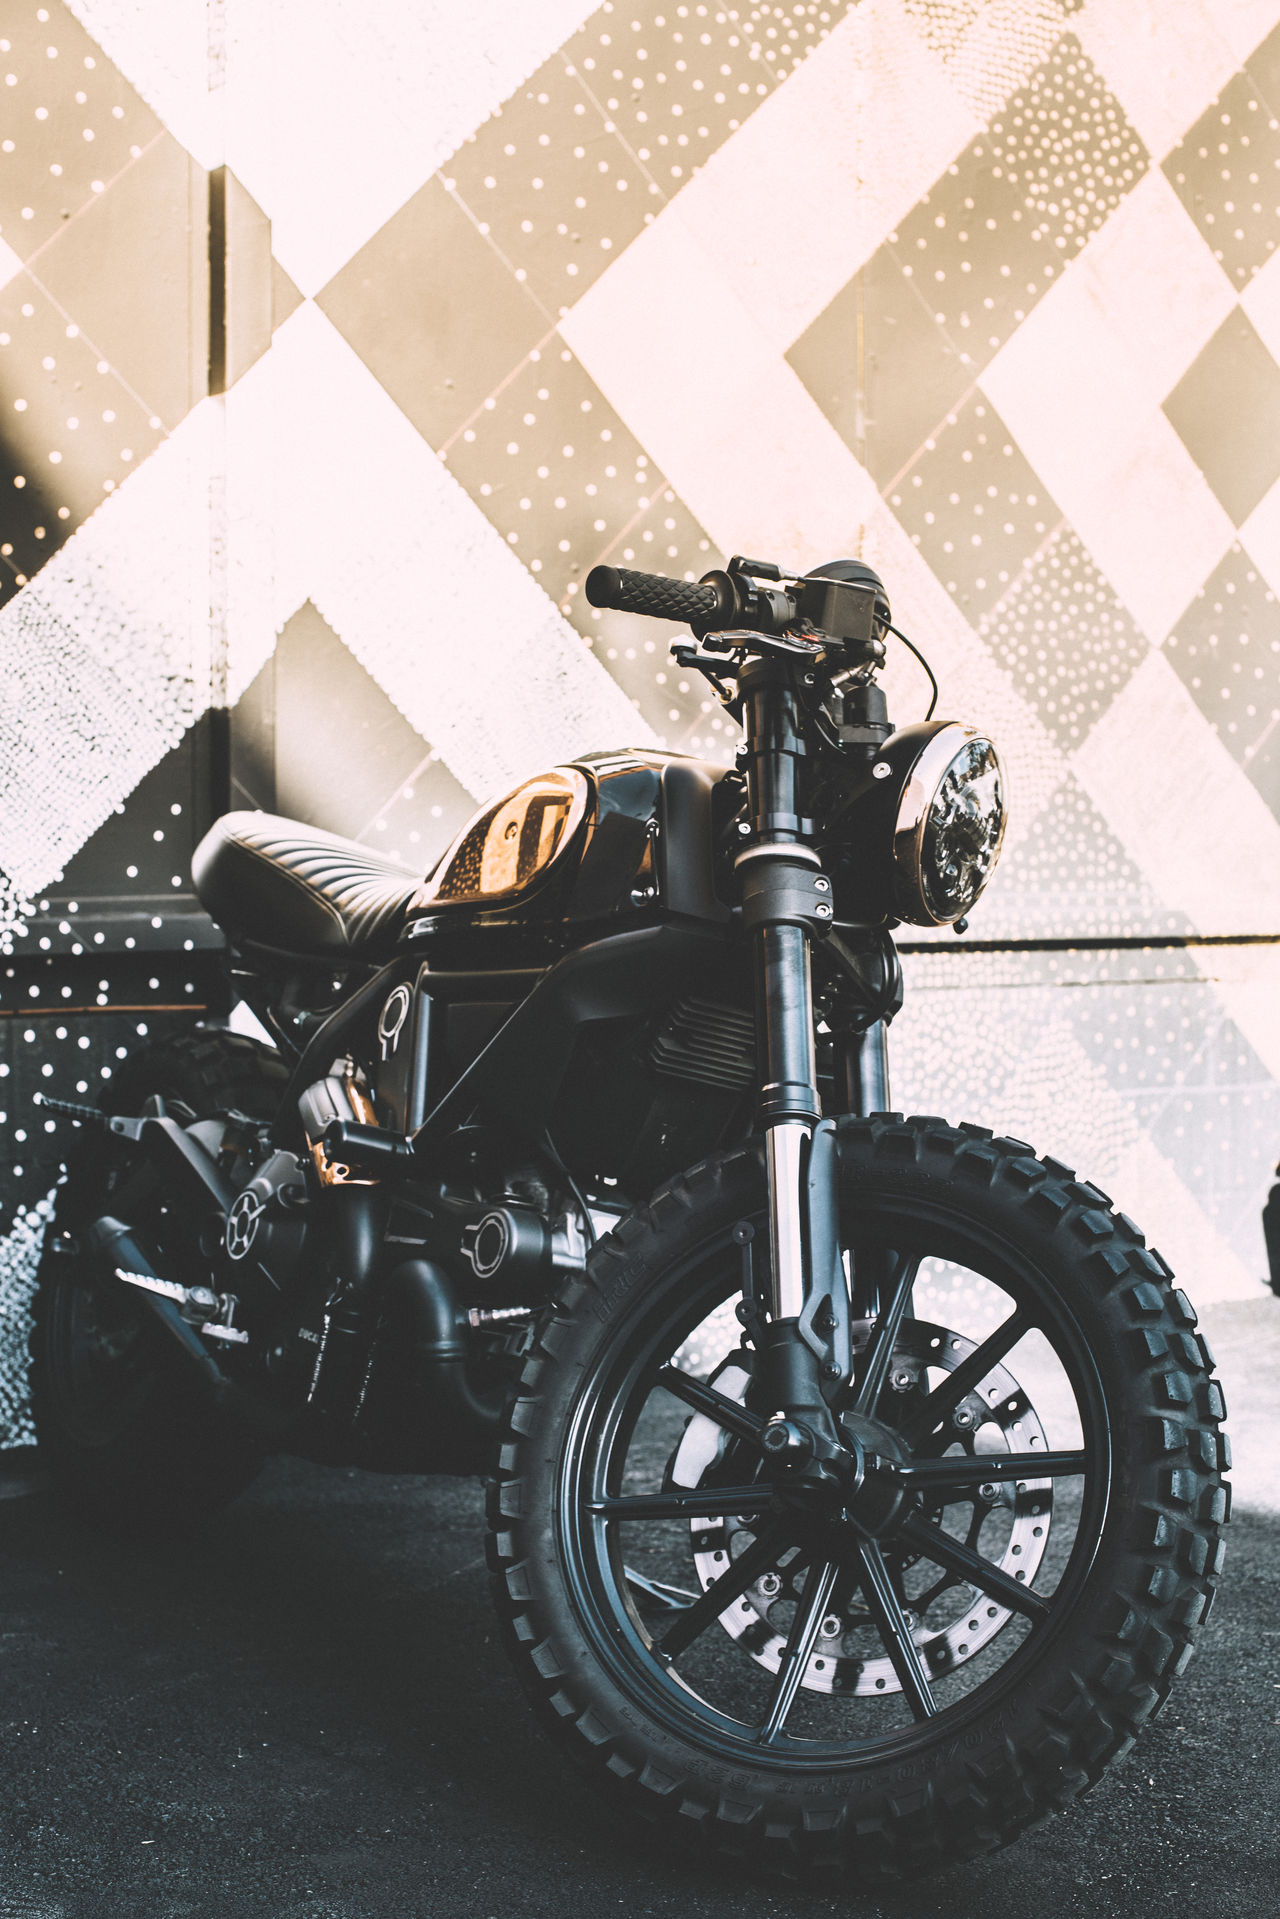 Aventure Bike Bike Ride Biker Caferacer Caferacerculture Cool Culture EyeEmNewHere Land Vehicle Livestyle Losangeles Motorbike Motorbikes Oldschool Parking Race For Life Racer Transportation Vehicle Velocity Vintage Vintage Bike Wheel